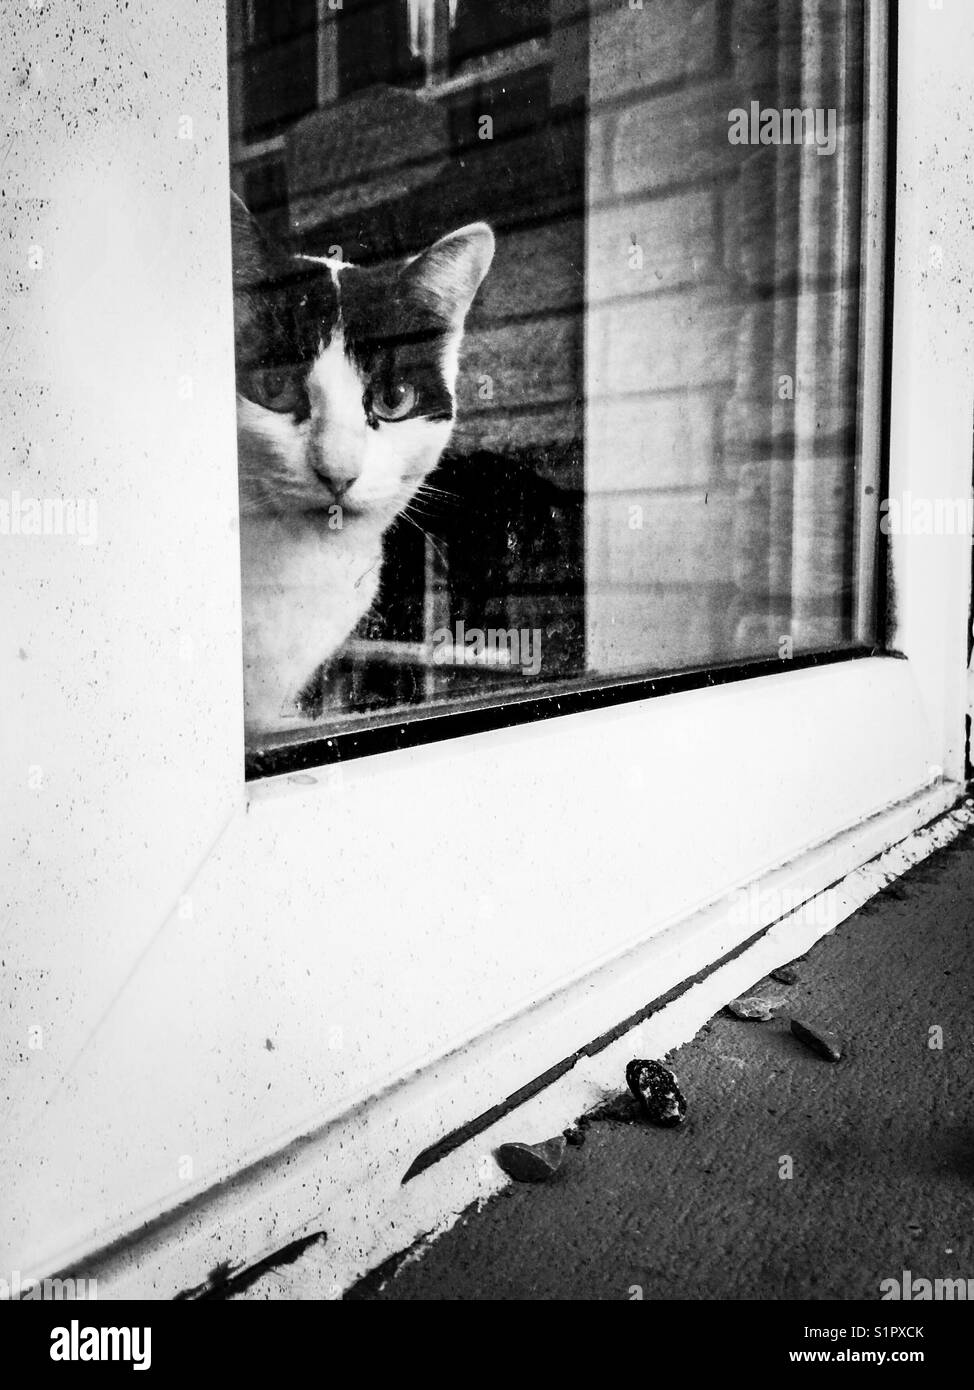 Small black and white tuxedo cat looking out window from inside - Stock Image